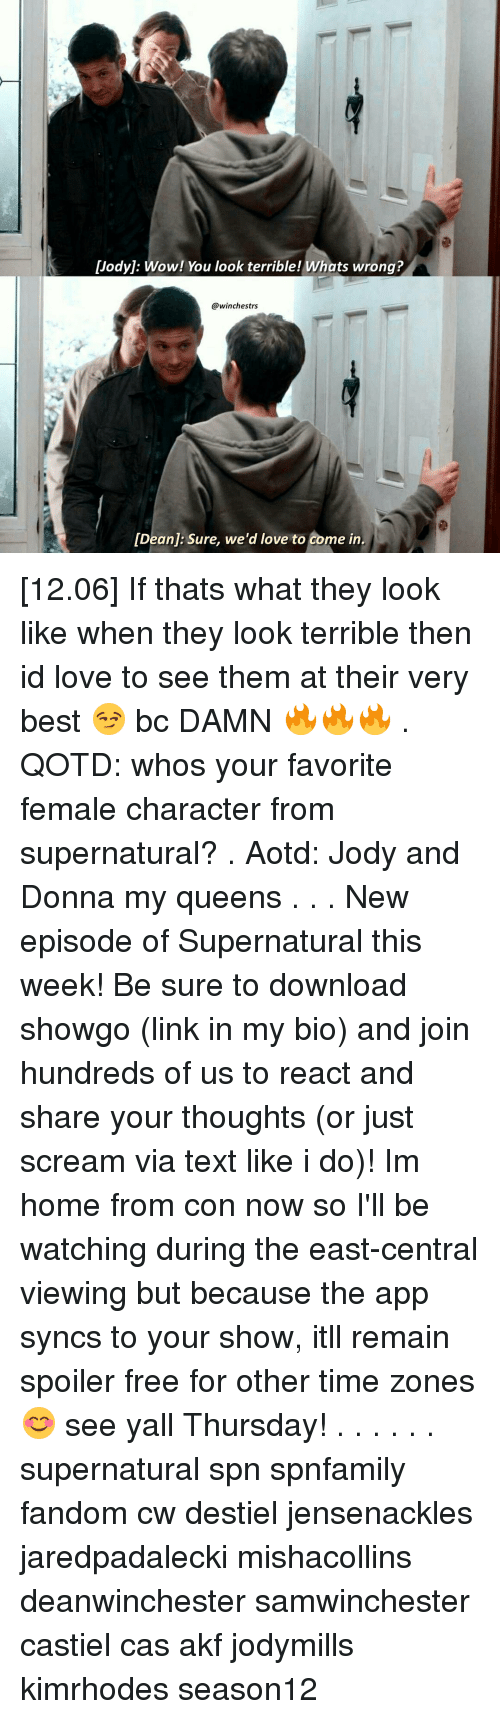 Terribler: Dody]: Wow! You look terrible! Whats wrong?  @winches trs  [Deanj: Sure, we'd love to come in [12.06] If thats what they look like when they look terrible then id love to see them at their very best 😏 bc DAMN 🔥🔥🔥 . QOTD: whos your favorite female character from supernatural? . Aotd: Jody and Donna my queens . . . New episode of Supernatural this week! Be sure to download showgo (link in my bio) and join hundreds of us to react and share your thoughts (or just scream via text like i do)! Im home from con now so I'll be watching during the east-central viewing but because the app syncs to your show, itll remain spoiler free for other time zones 😊 see yall Thursday! . . . . . . supernatural spn spnfamily fandom cw destiel jensenackles jaredpadalecki mishacollins deanwinchester samwinchester castiel cas akf jodymills kimrhodes season12